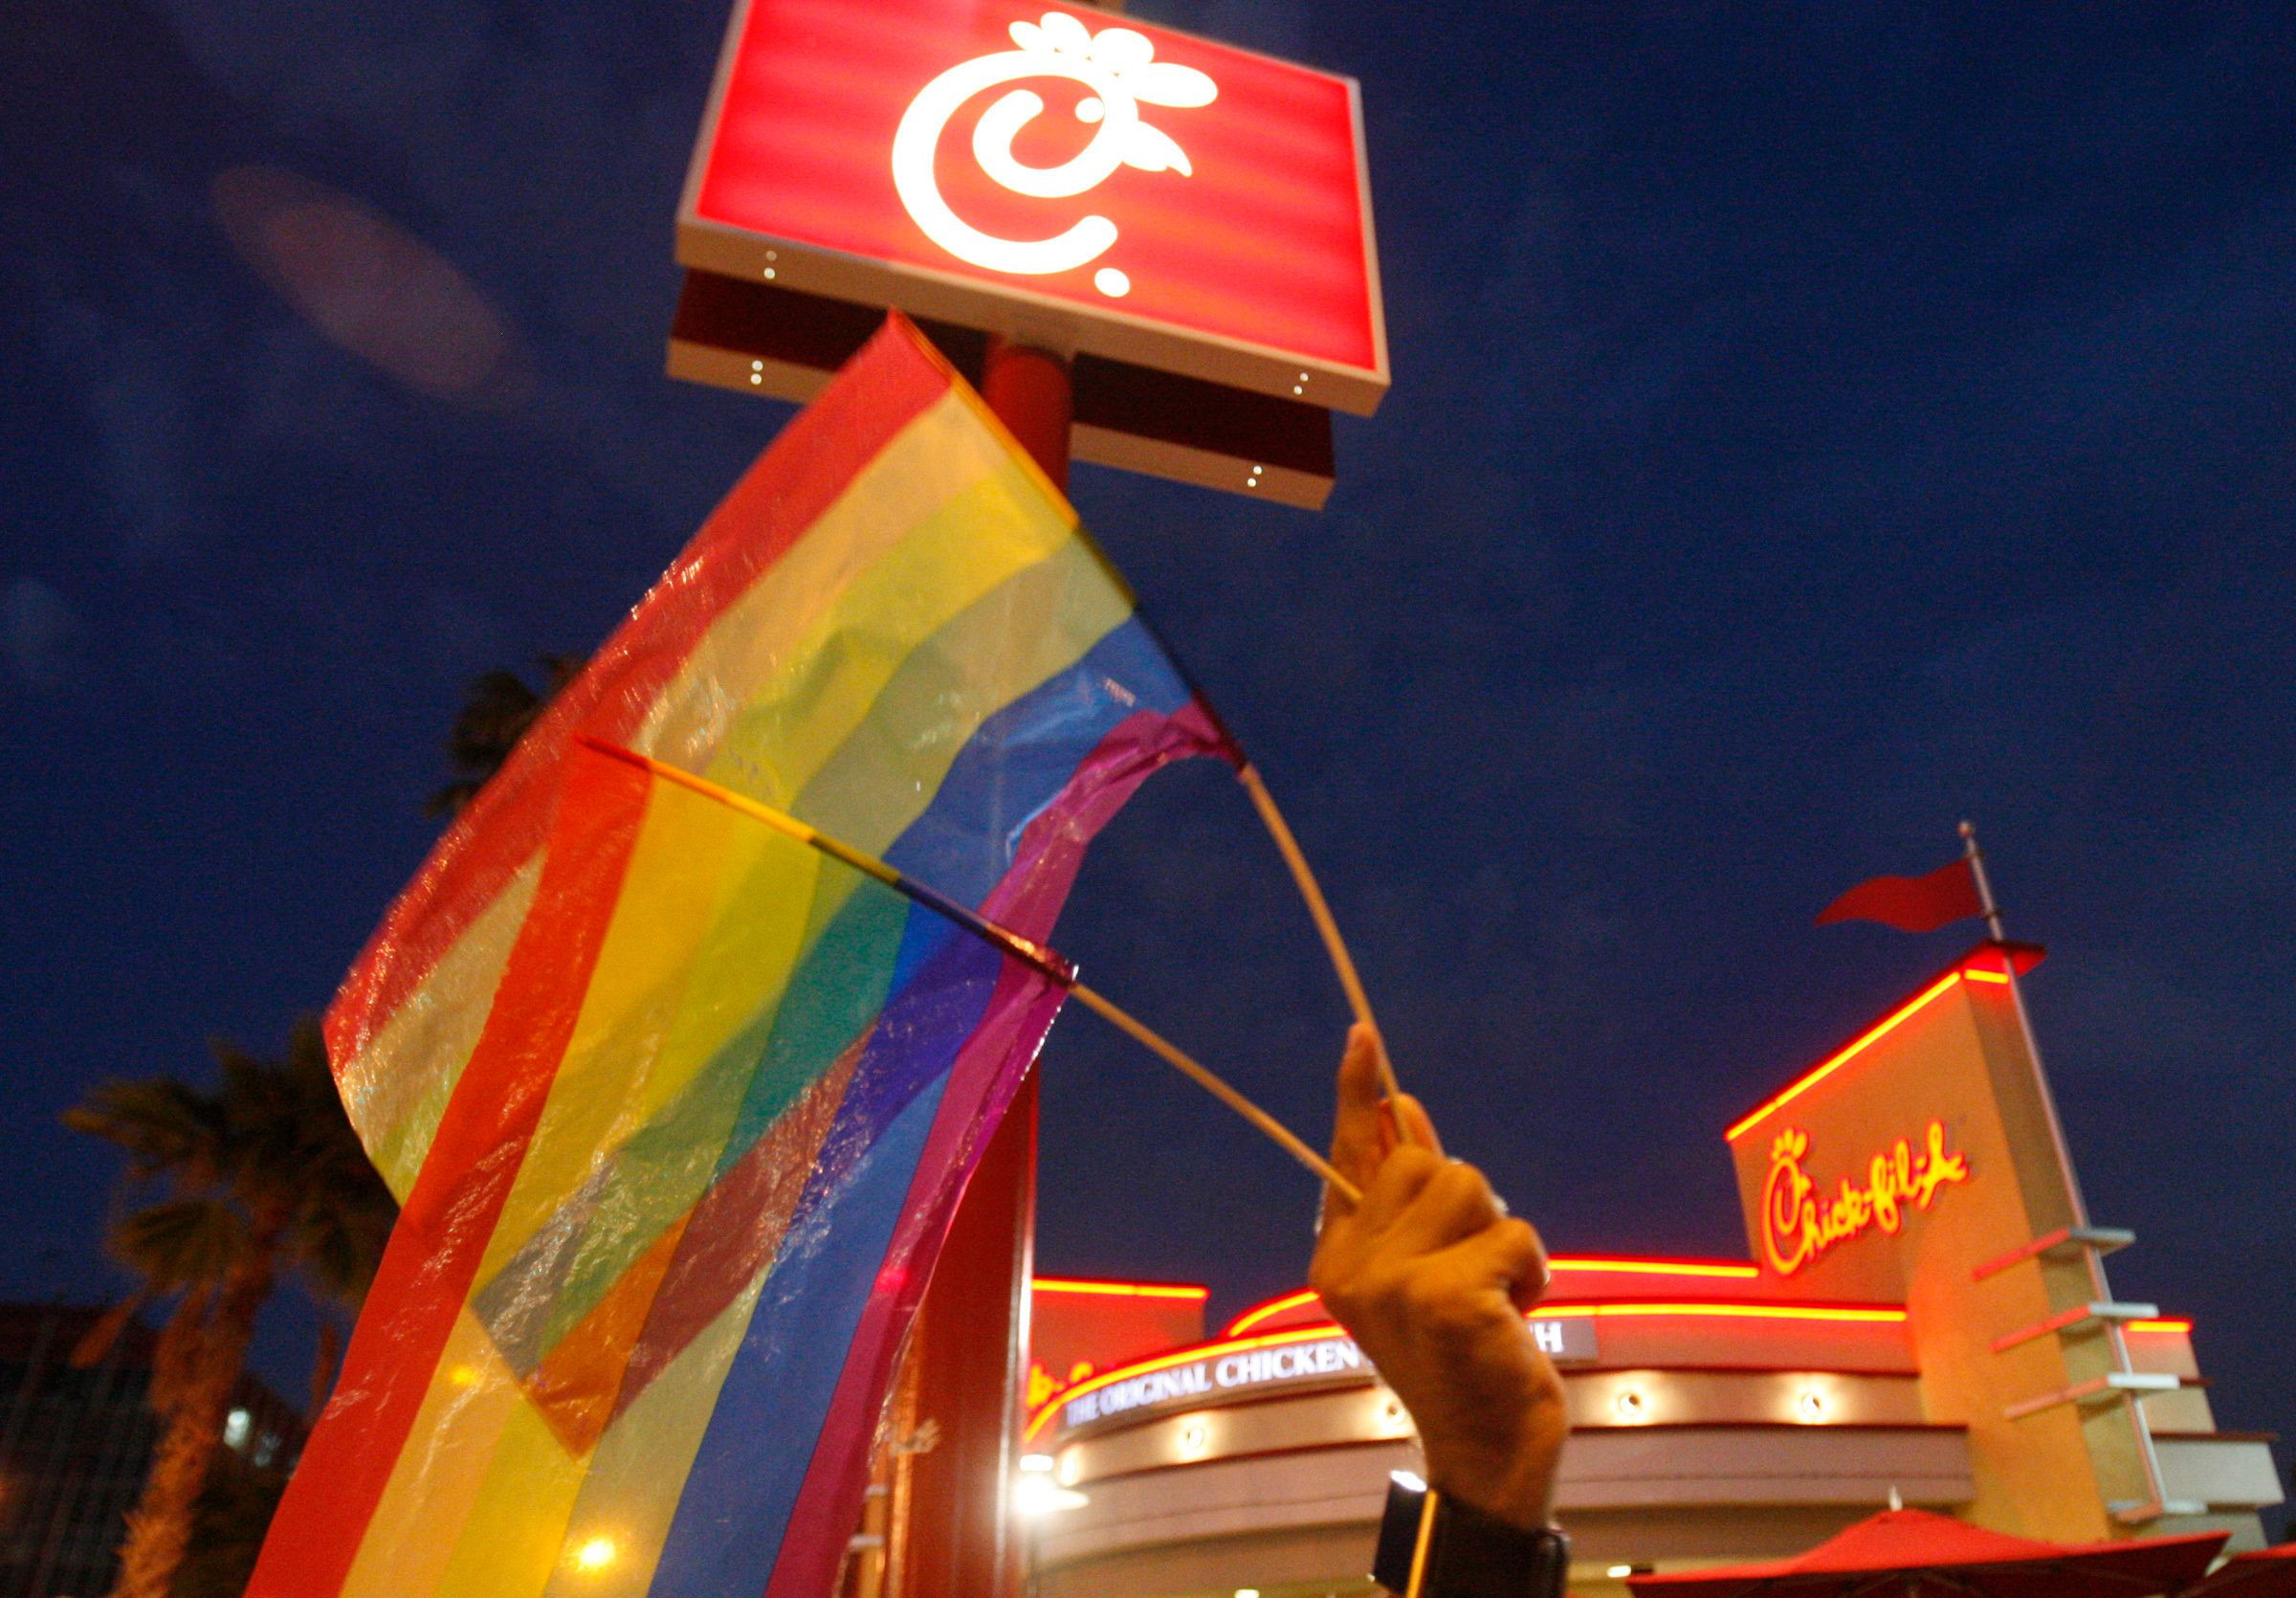 Thomas Guastavino, of the Cuddles gay men's choir, holds up gay pride flags while joining a group of gay–rights and same–sex marriage supporters protesting in front of Chick–fil–A restaurant in Hollywood Friday, August 3, 2012. LGBT supporters have declared Friday to be National Same Sex Kiss Day and are encouraging others to show up at Chick–fil–A restaurants nationwide Friday and stage a 'kiss–in.' Some activists are combining the 'kiss–ins' with Friday evening rallies.  (Photo by Allen J. Schaben/Los Angeles Times via Getty Images)